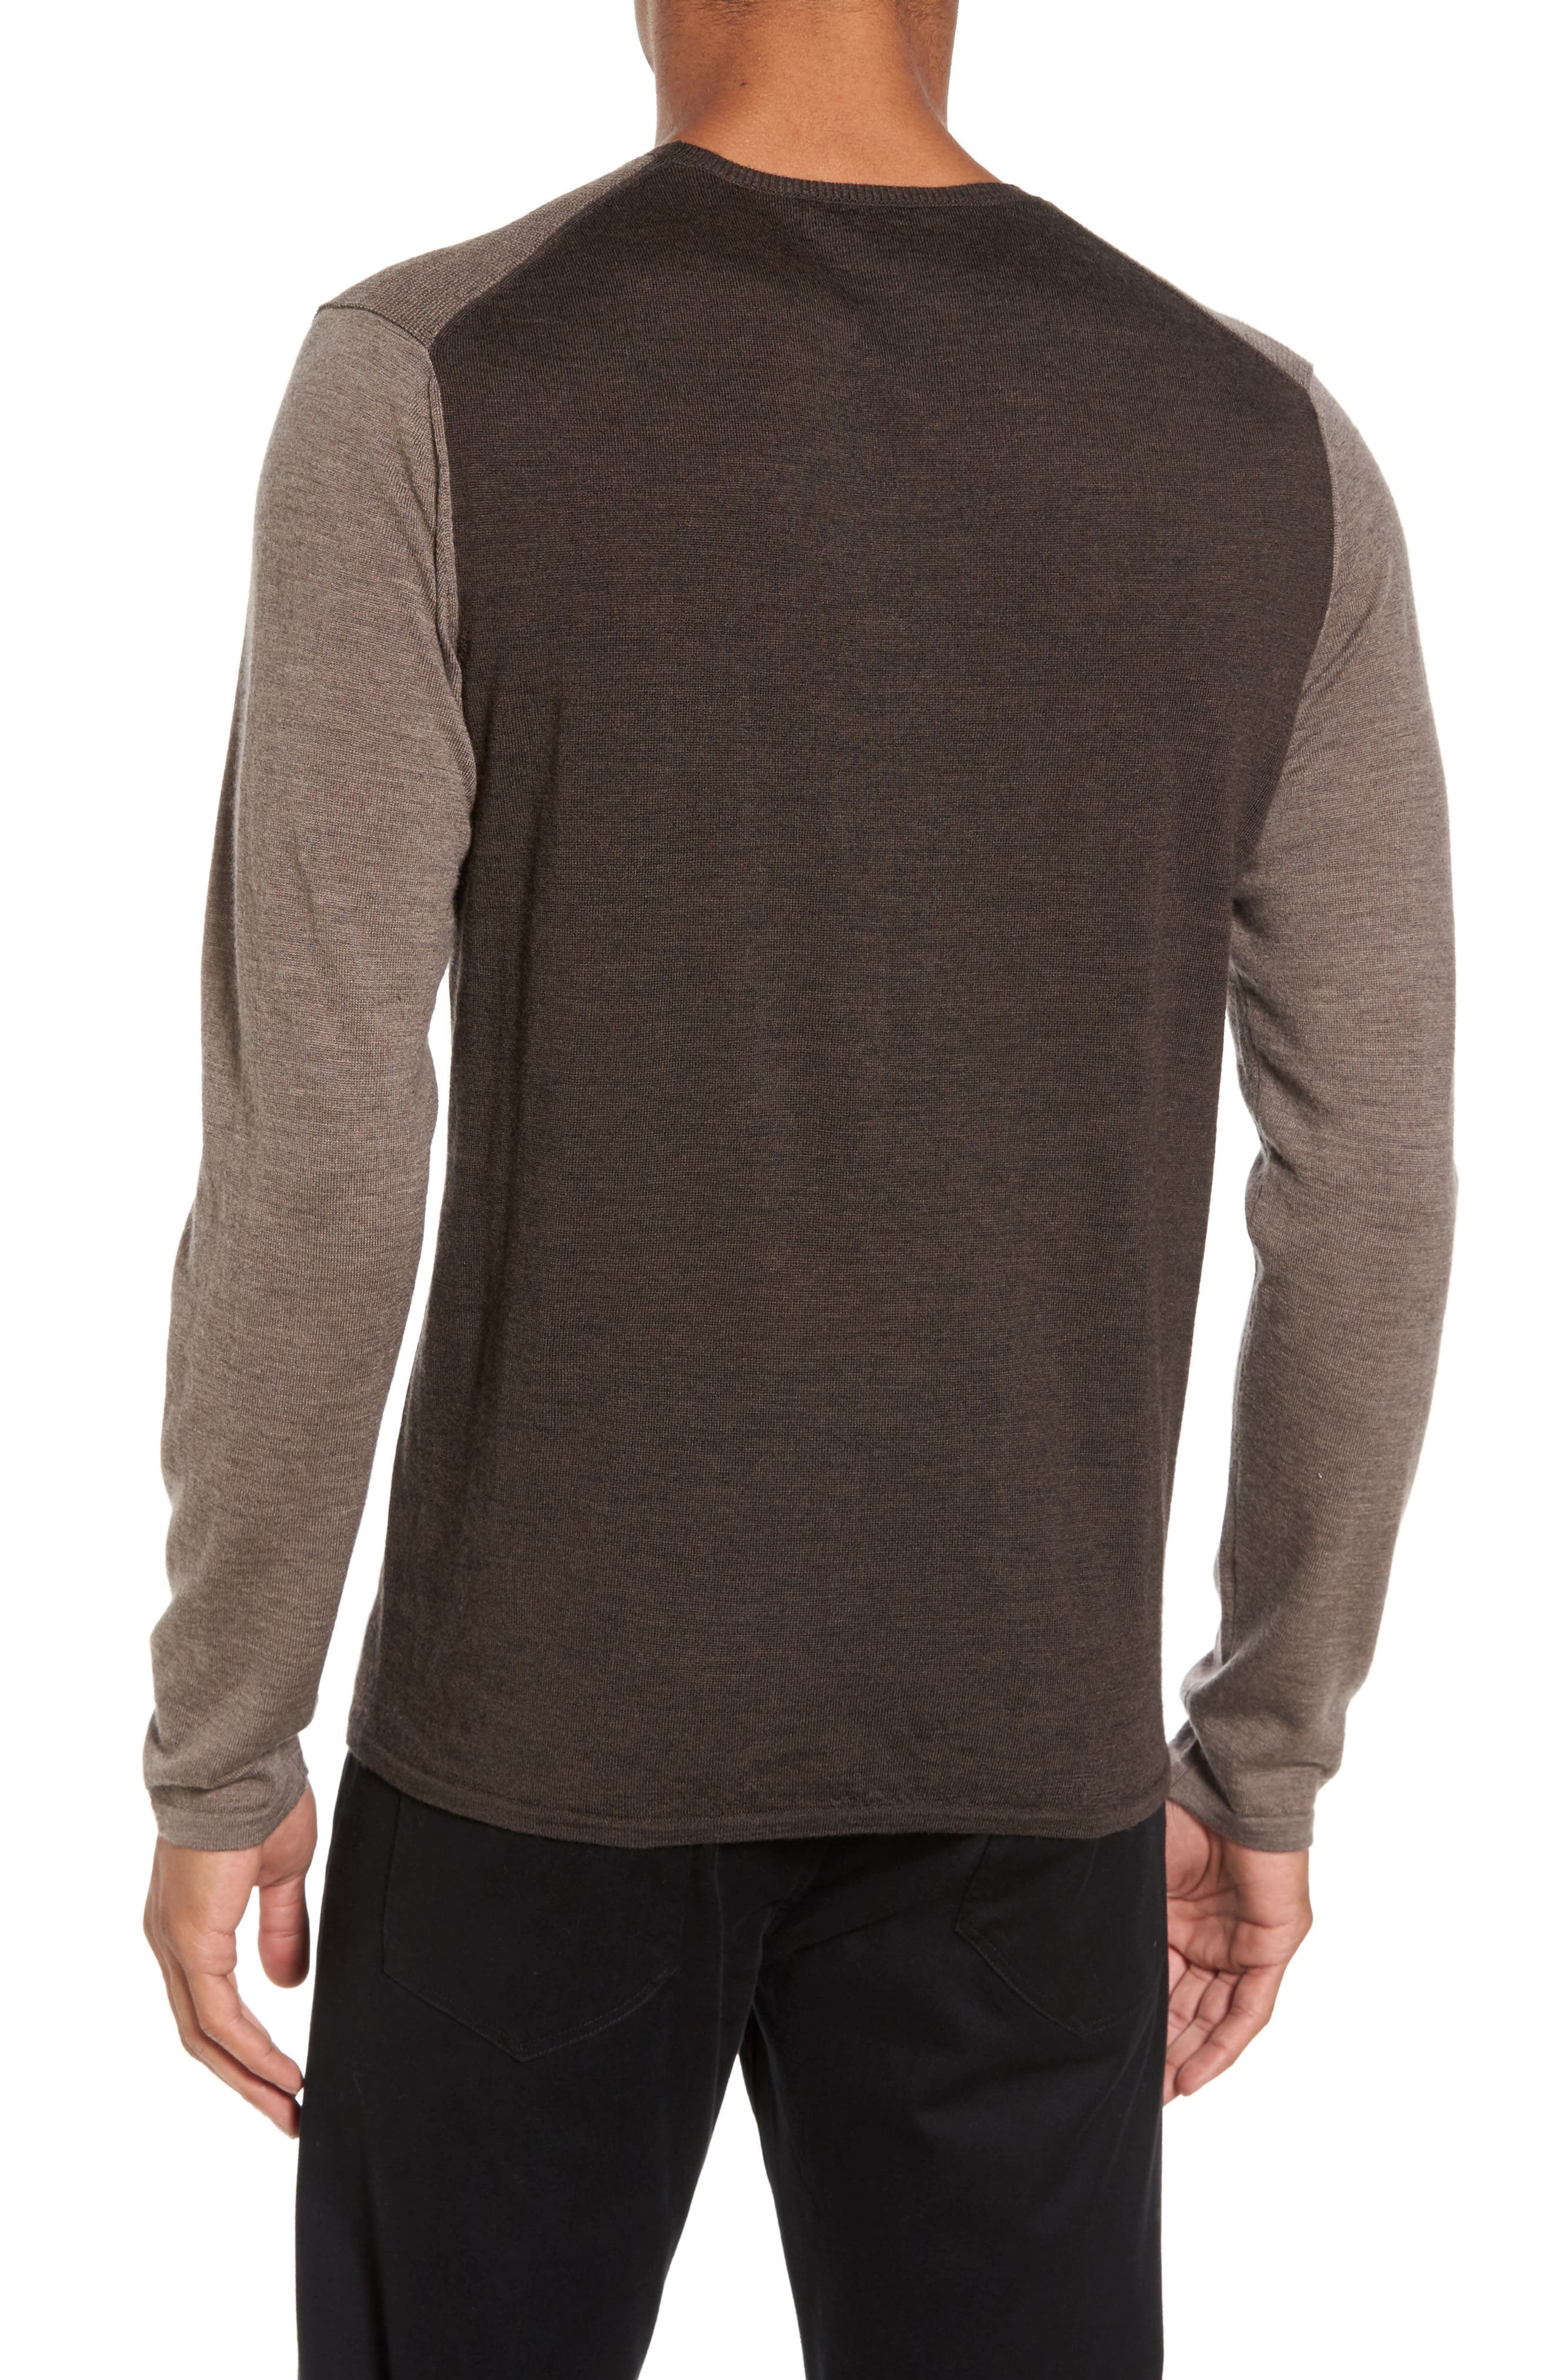 Huxley Merino Sweater,                             Alternate thumbnail 2, color,                             Light Coffee